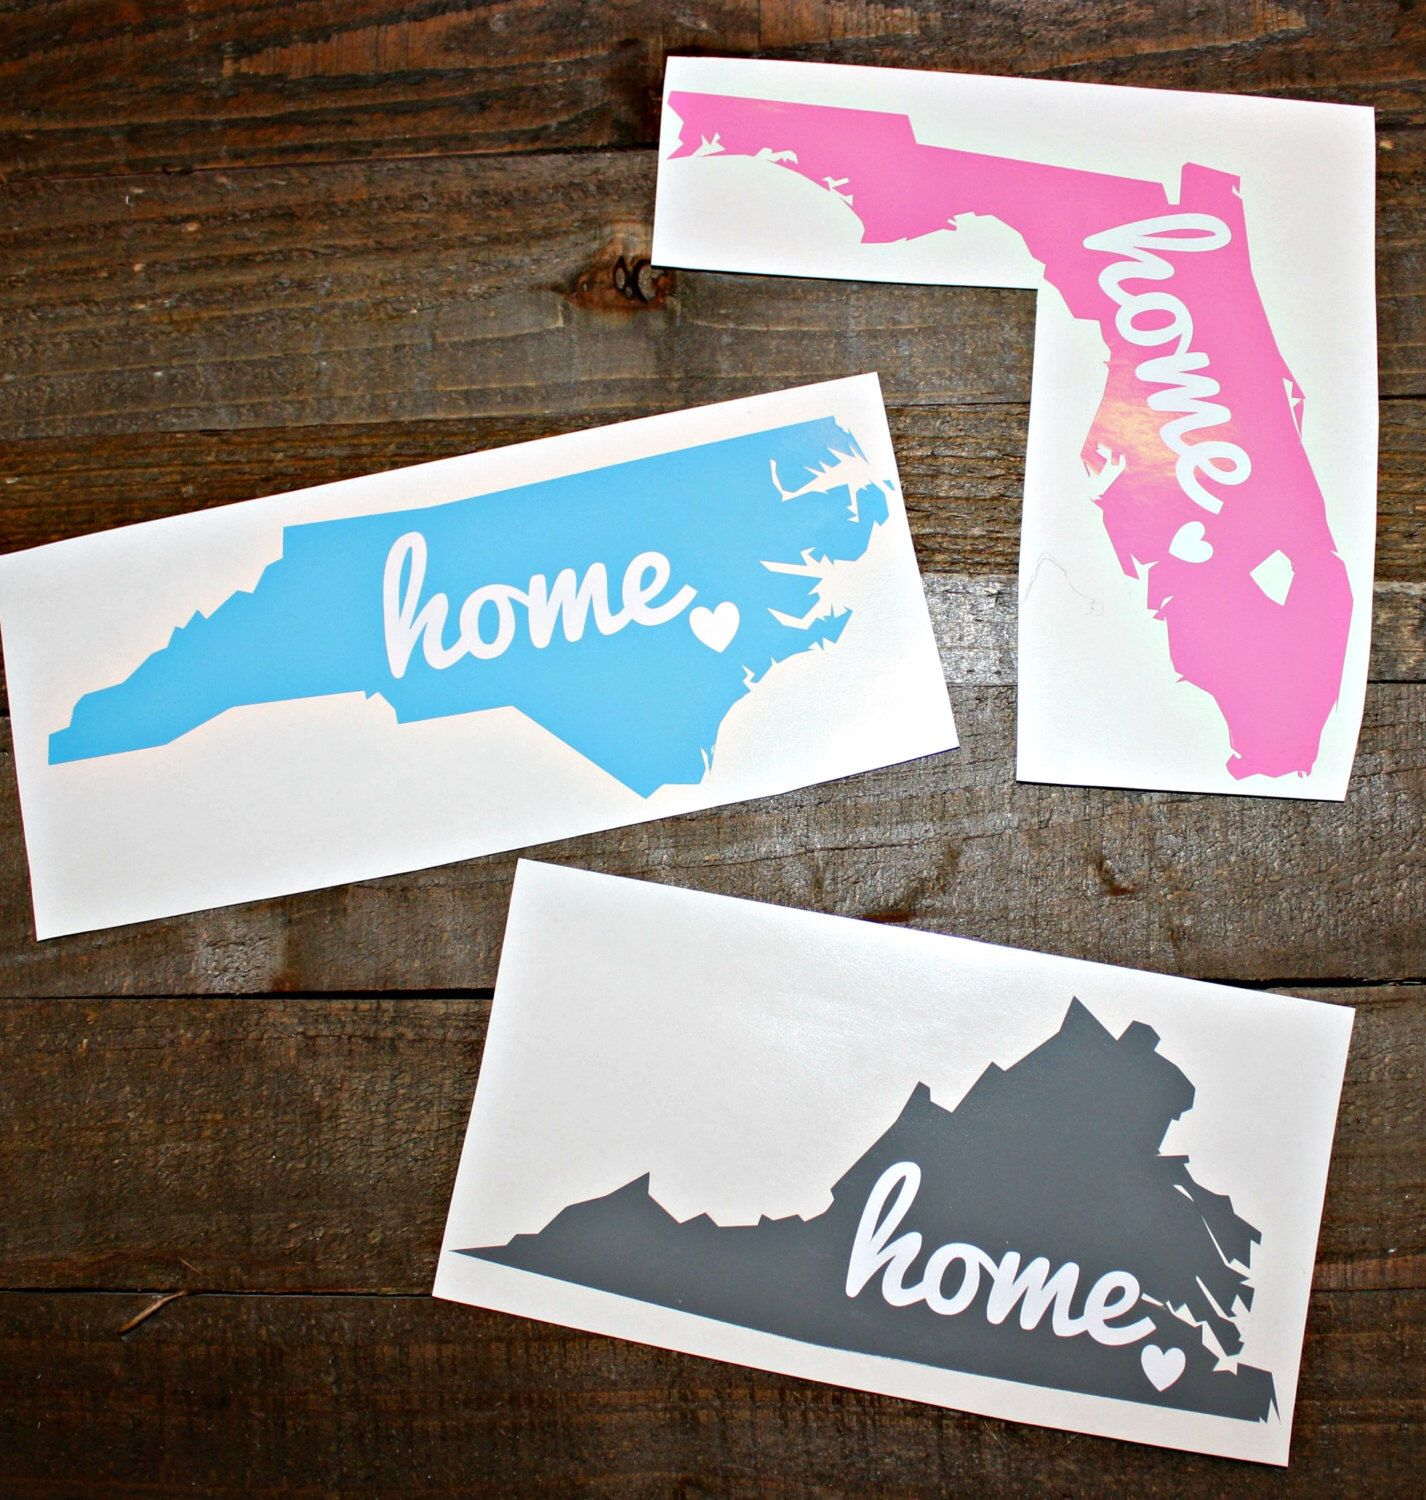 State Car Decal State Home Decal State Love Decal North Carolina Decal Florida Decal Virginia Decal Vinyl Decal Cute Car Decals Diy Vinyl Car Decals Vinyl [ 1500 x 1426 Pixel ]